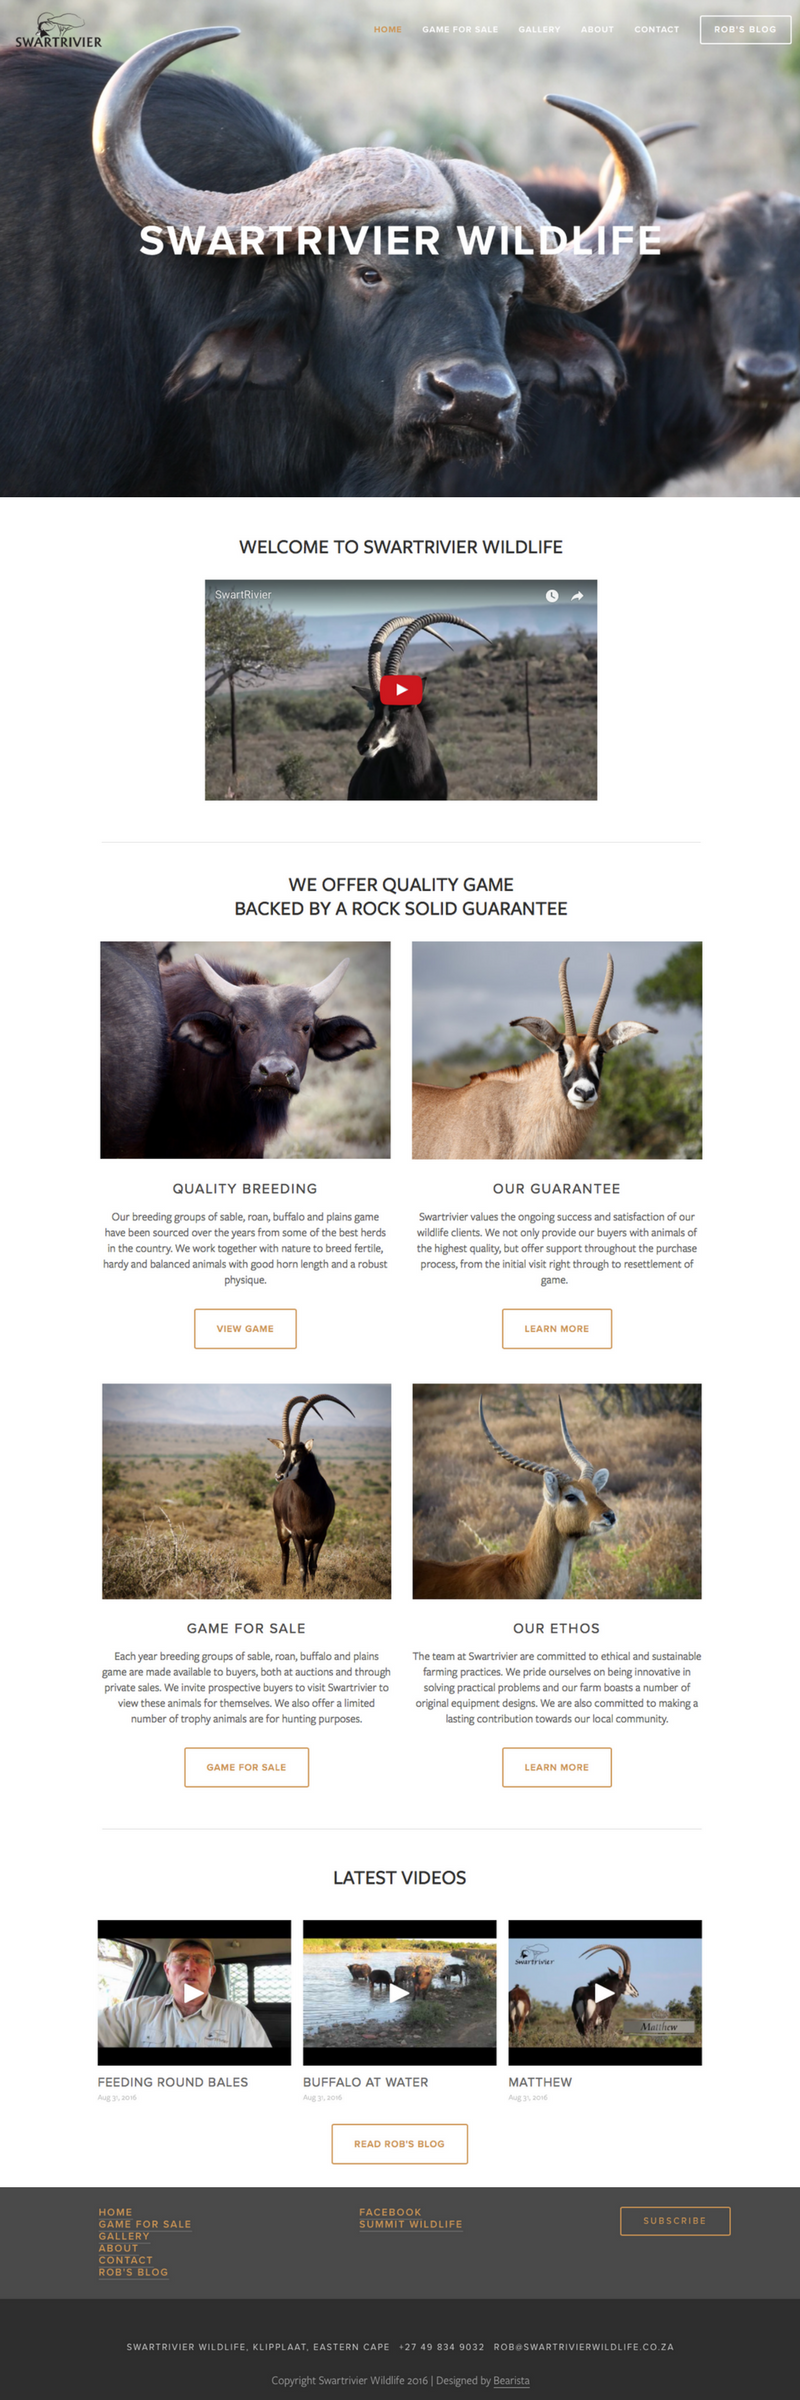 Swartrivier Wildlife's home page.